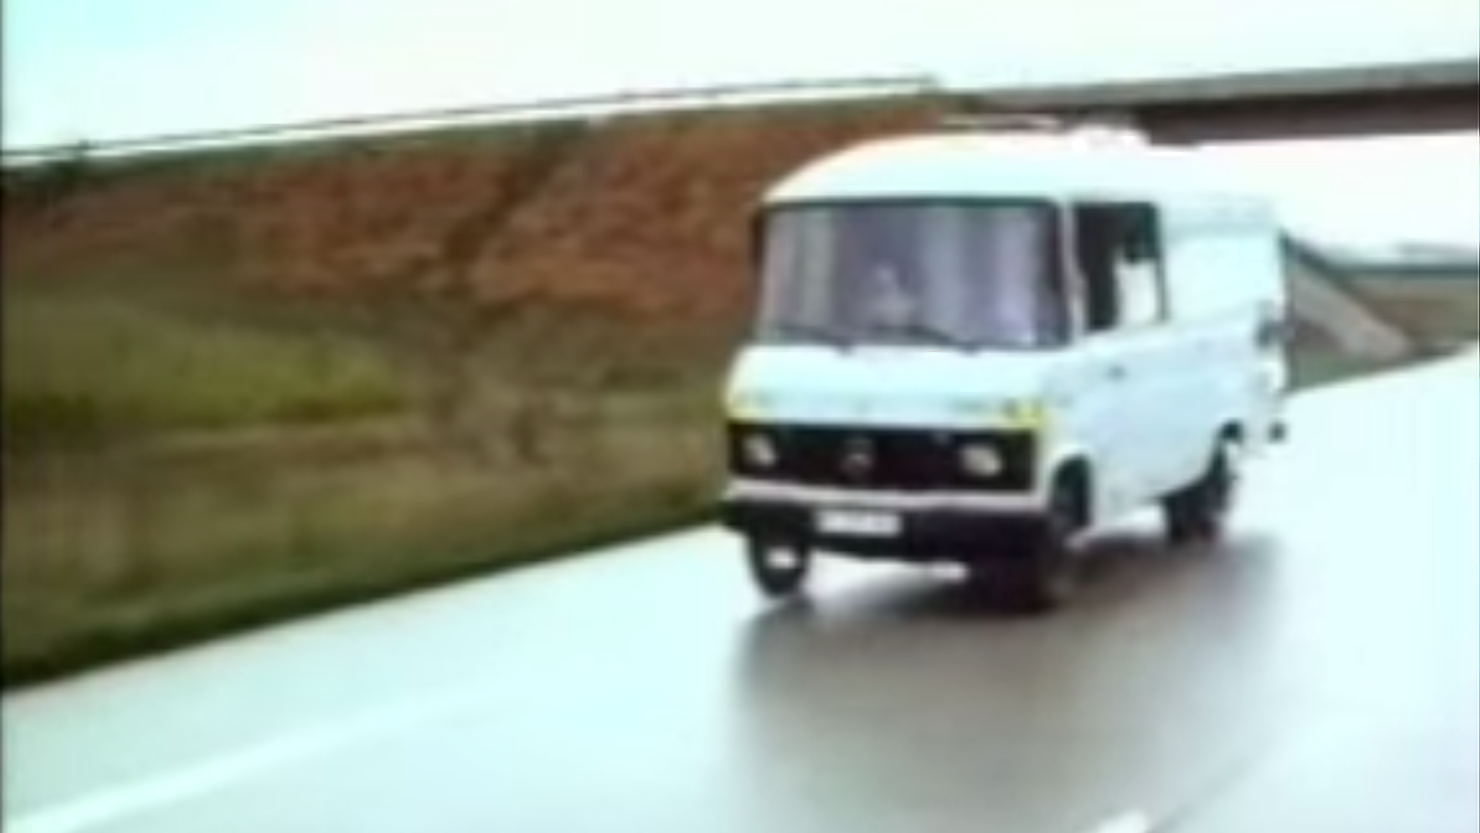 This Story Of A German Engineer Who Made An Autonomous Mercedes Van In 1986 Is Fascinating